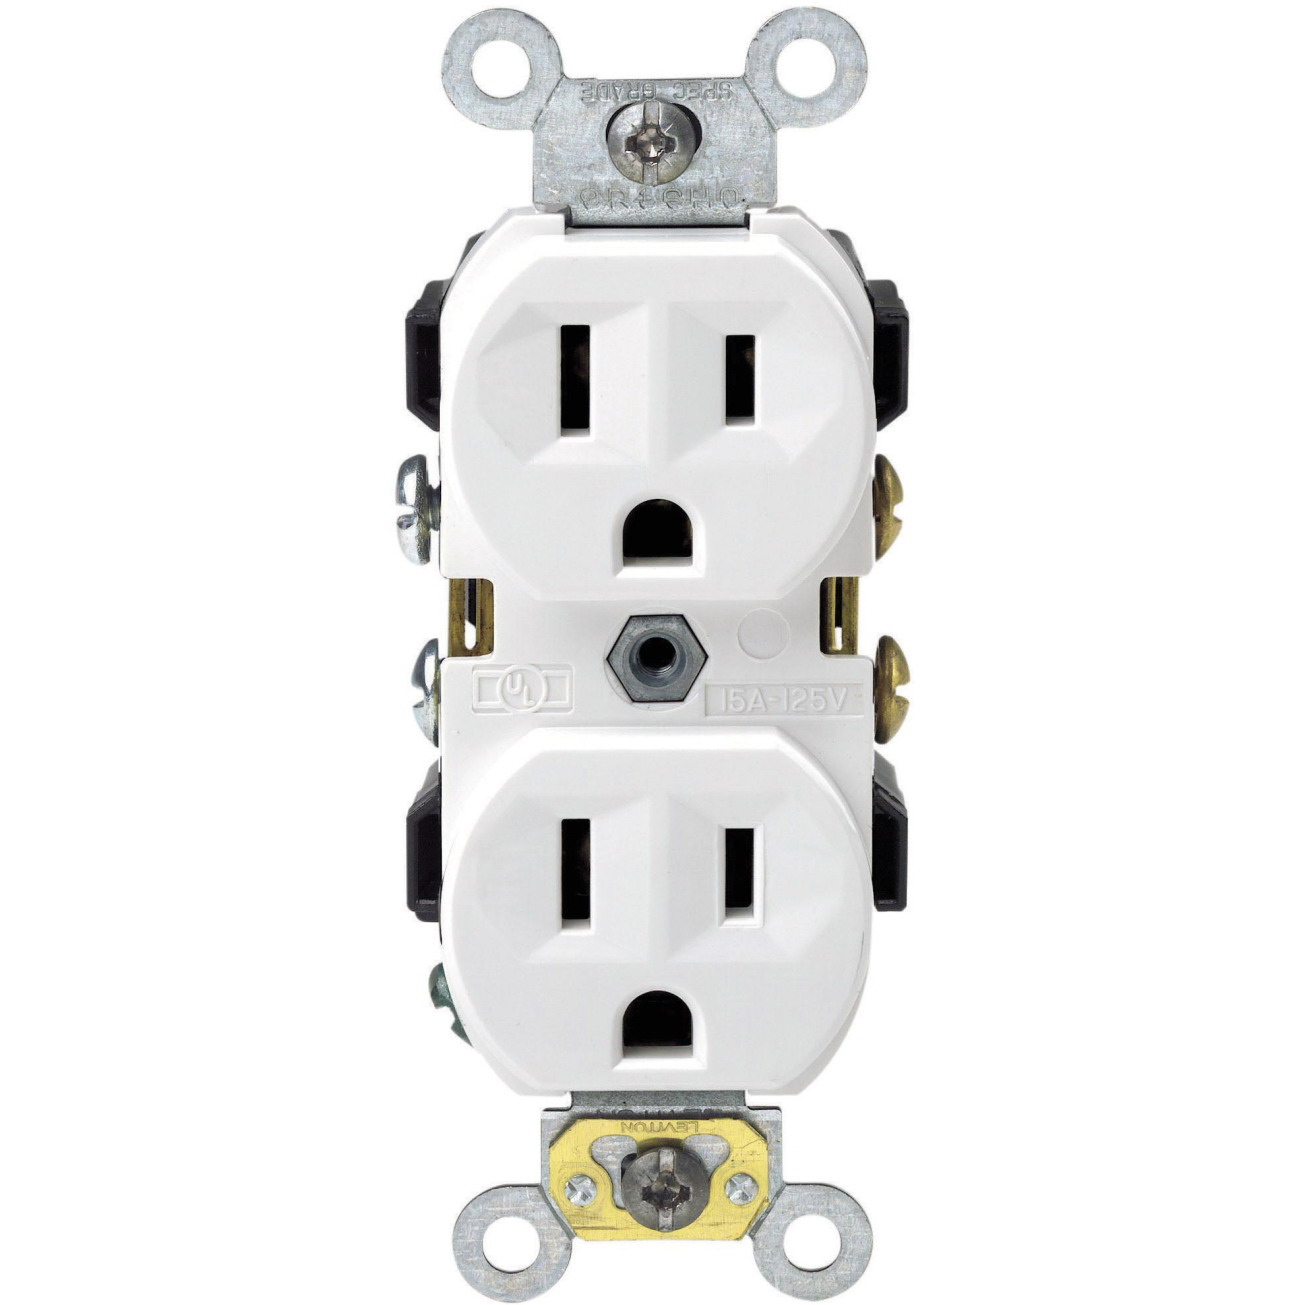 Leviton S02-0CR15-0WS Narrow Body Straight Blade Duplex Receptacle, 125 V, 15 A, 2 Pole, 3 Wire, White